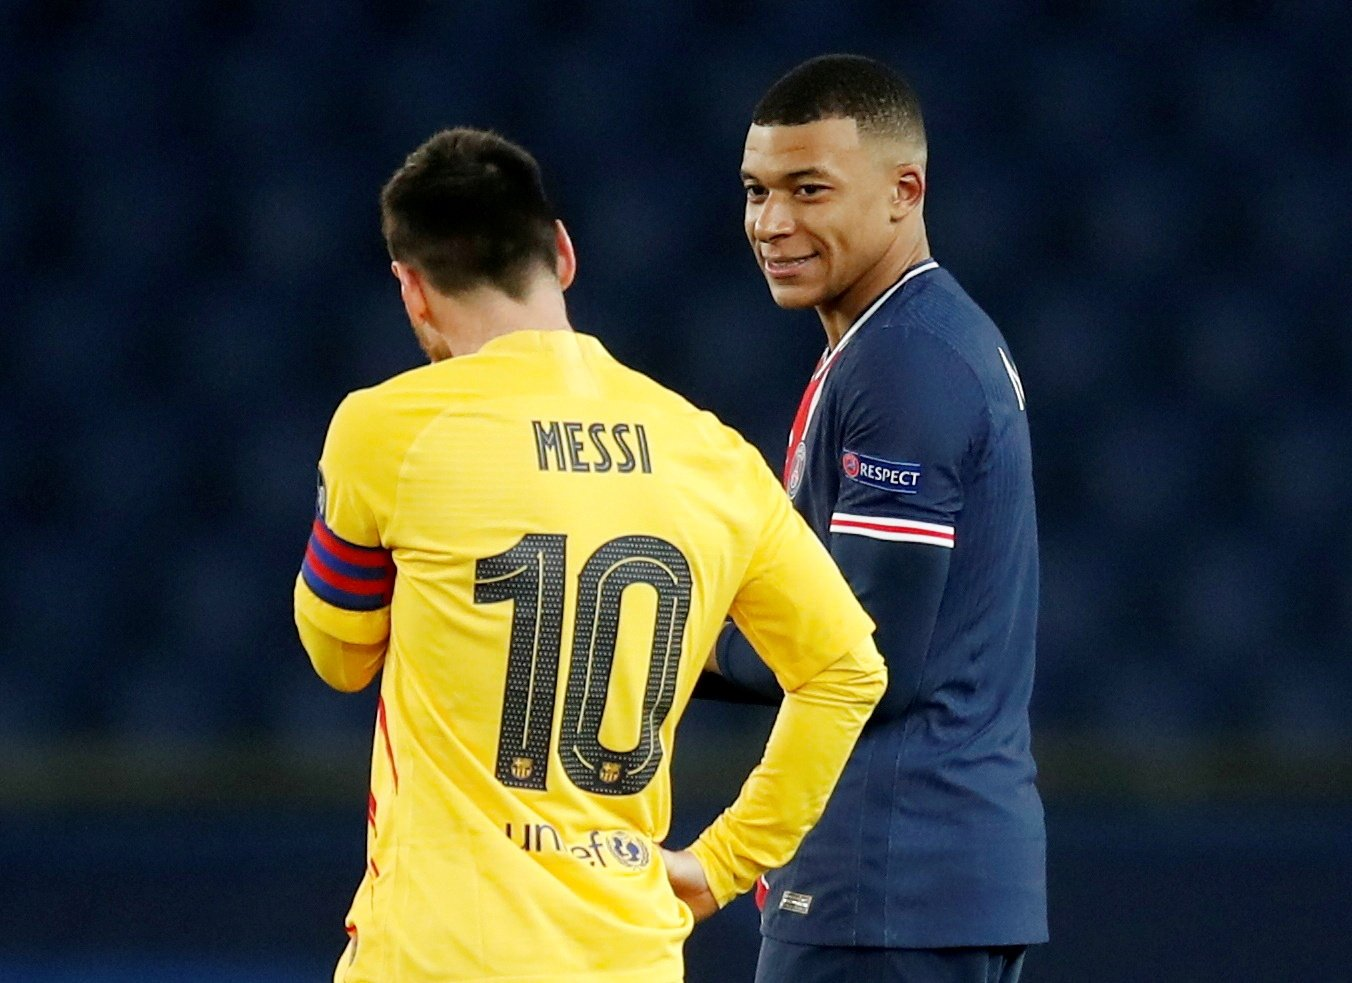 Lionel Messi talks with Kylian Mbappe during the second leg match of the Champions League Round of 16 match between Paris St Germain and FC Barcelona at Parc des Princes, Paris, France, March 10, 2021 (Reuters File Photo)